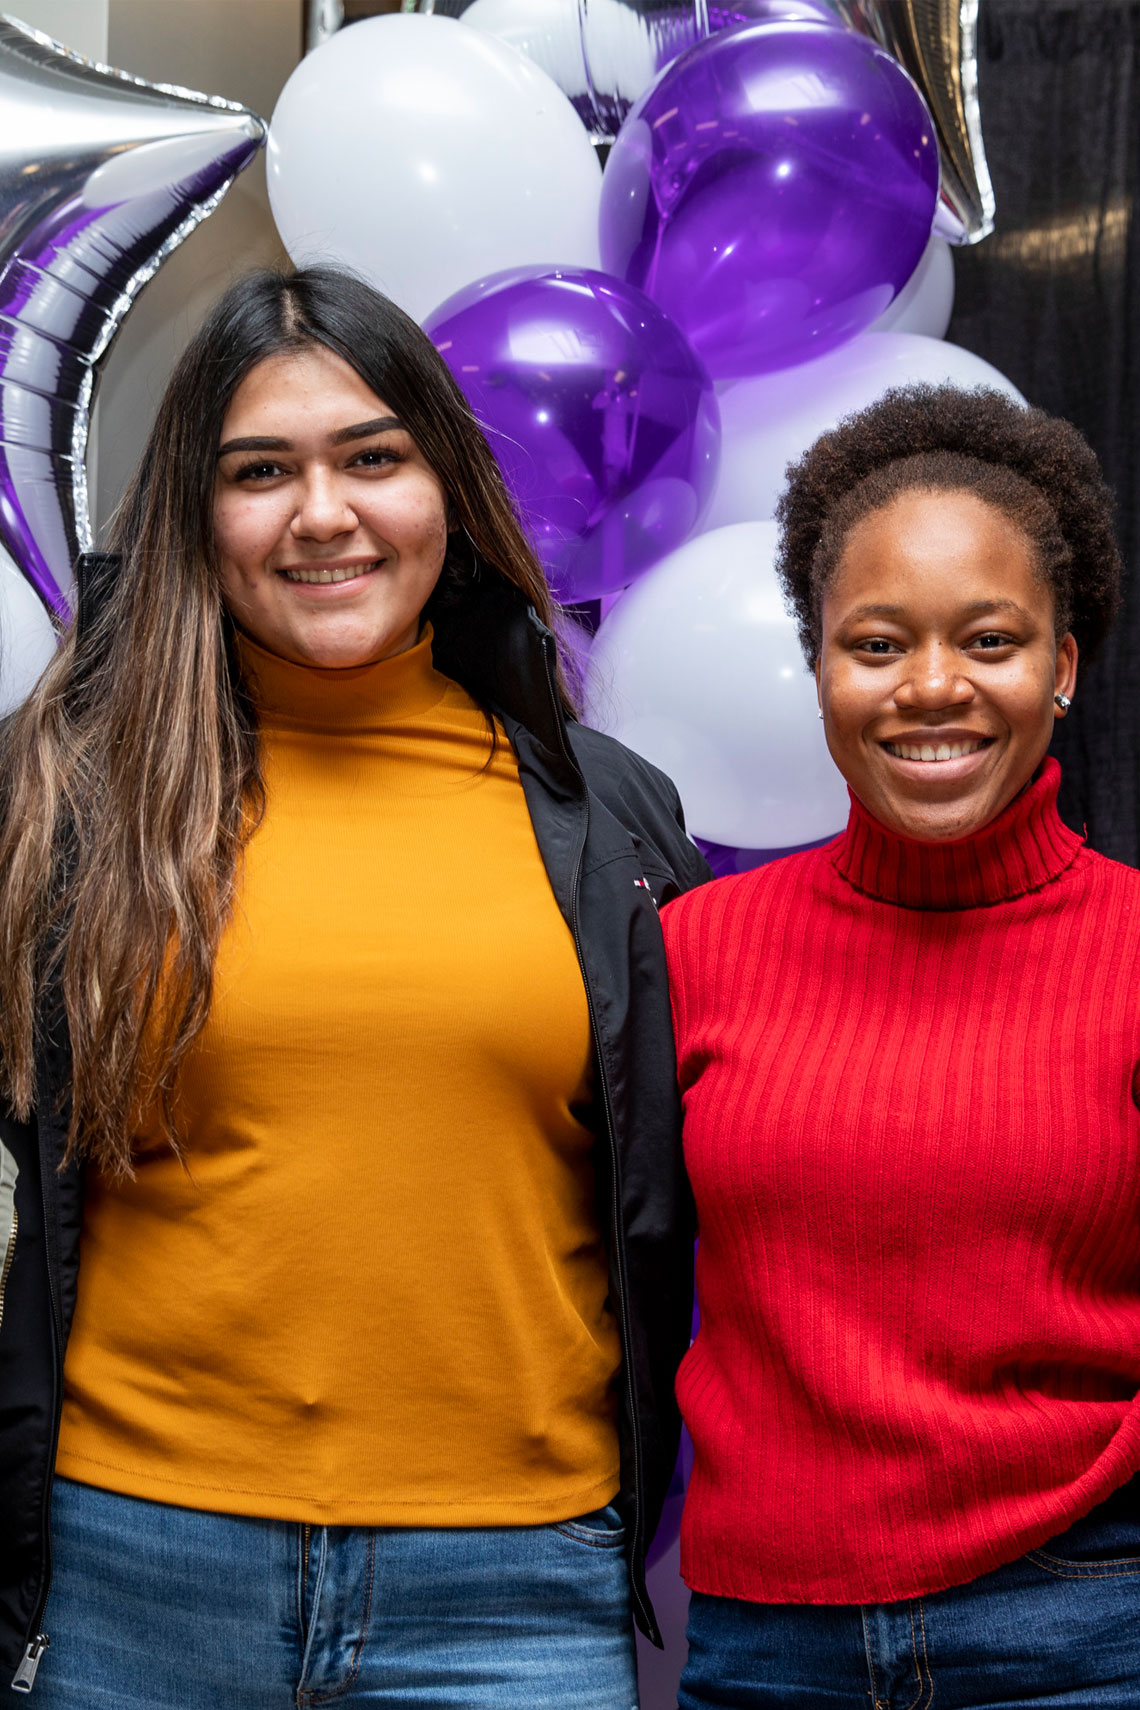 Two young women smiling in front of purple and white balloons.